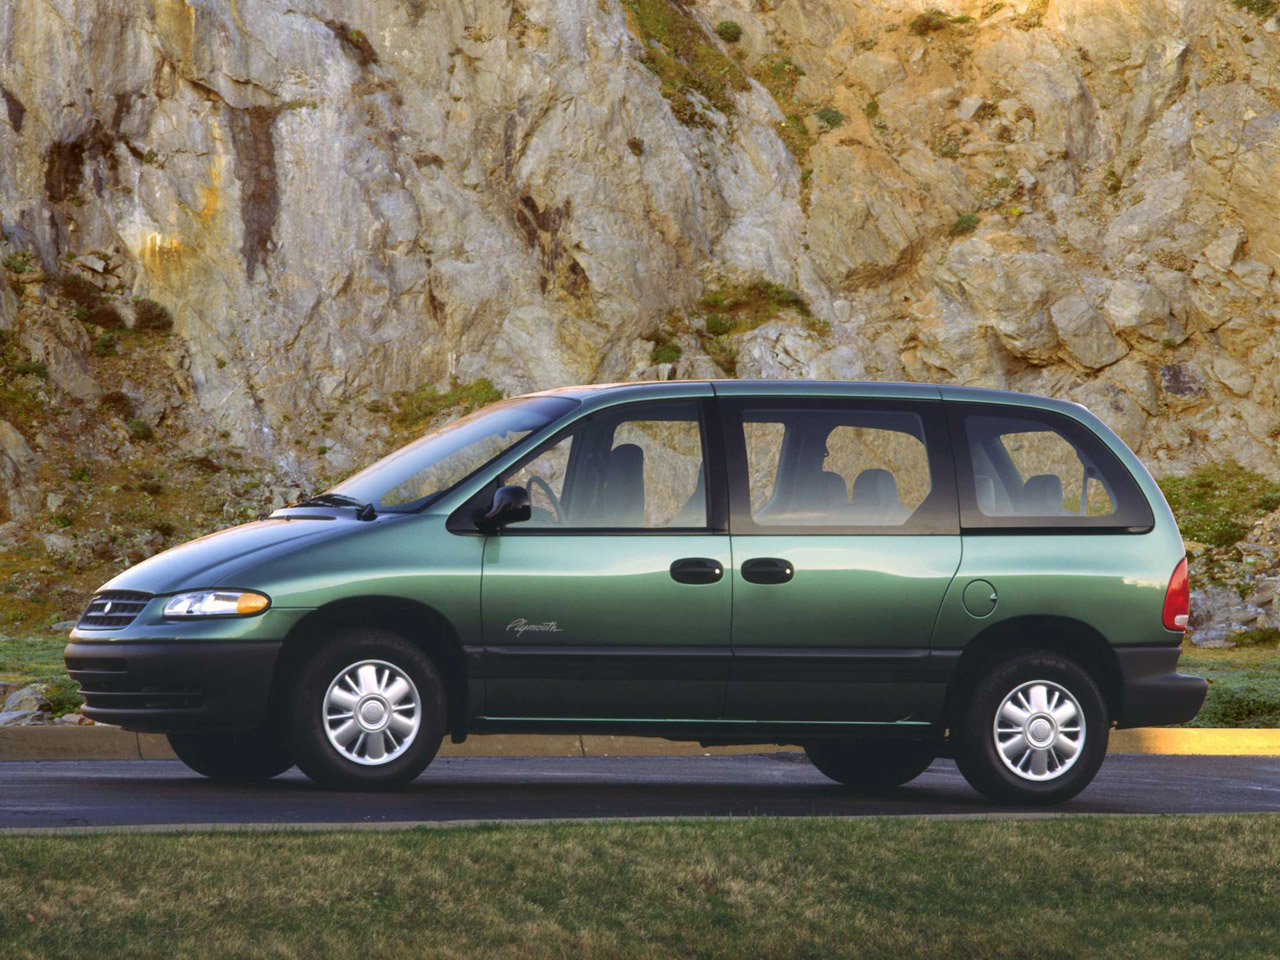 2000 Plymouth Voyager #15